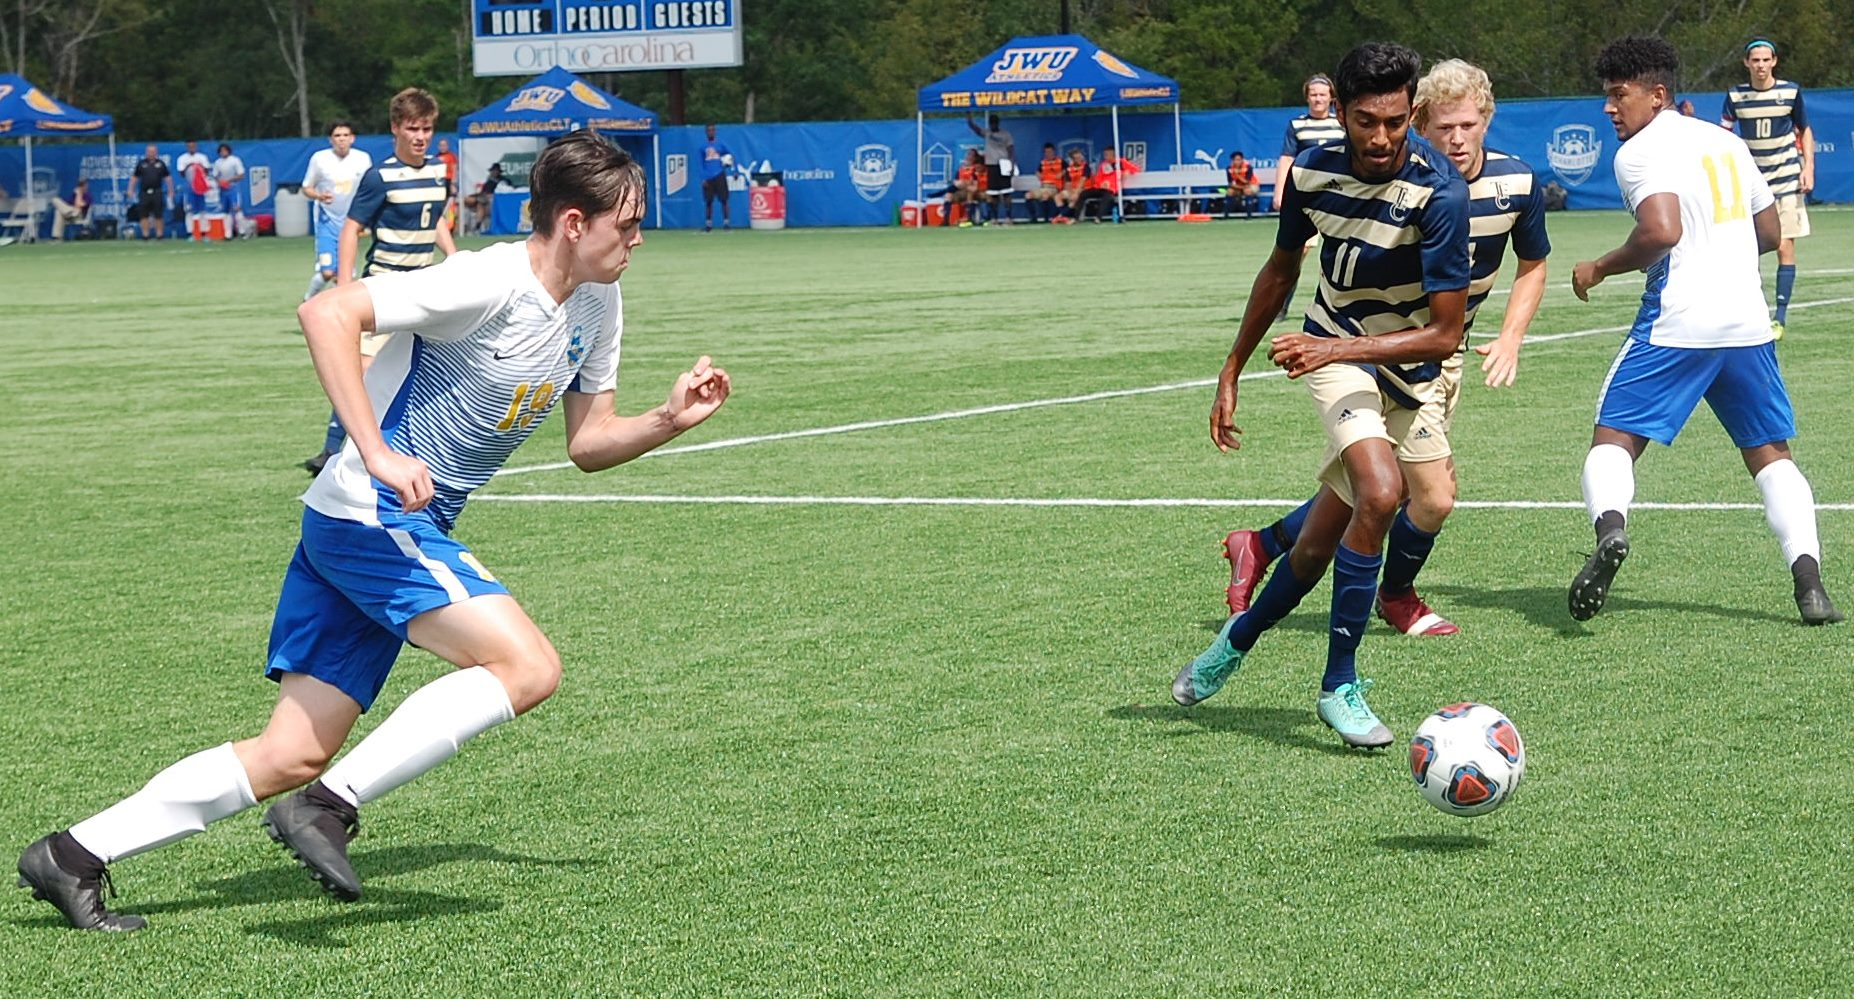 Men's Soccer Shuts Out Screaming Eagles